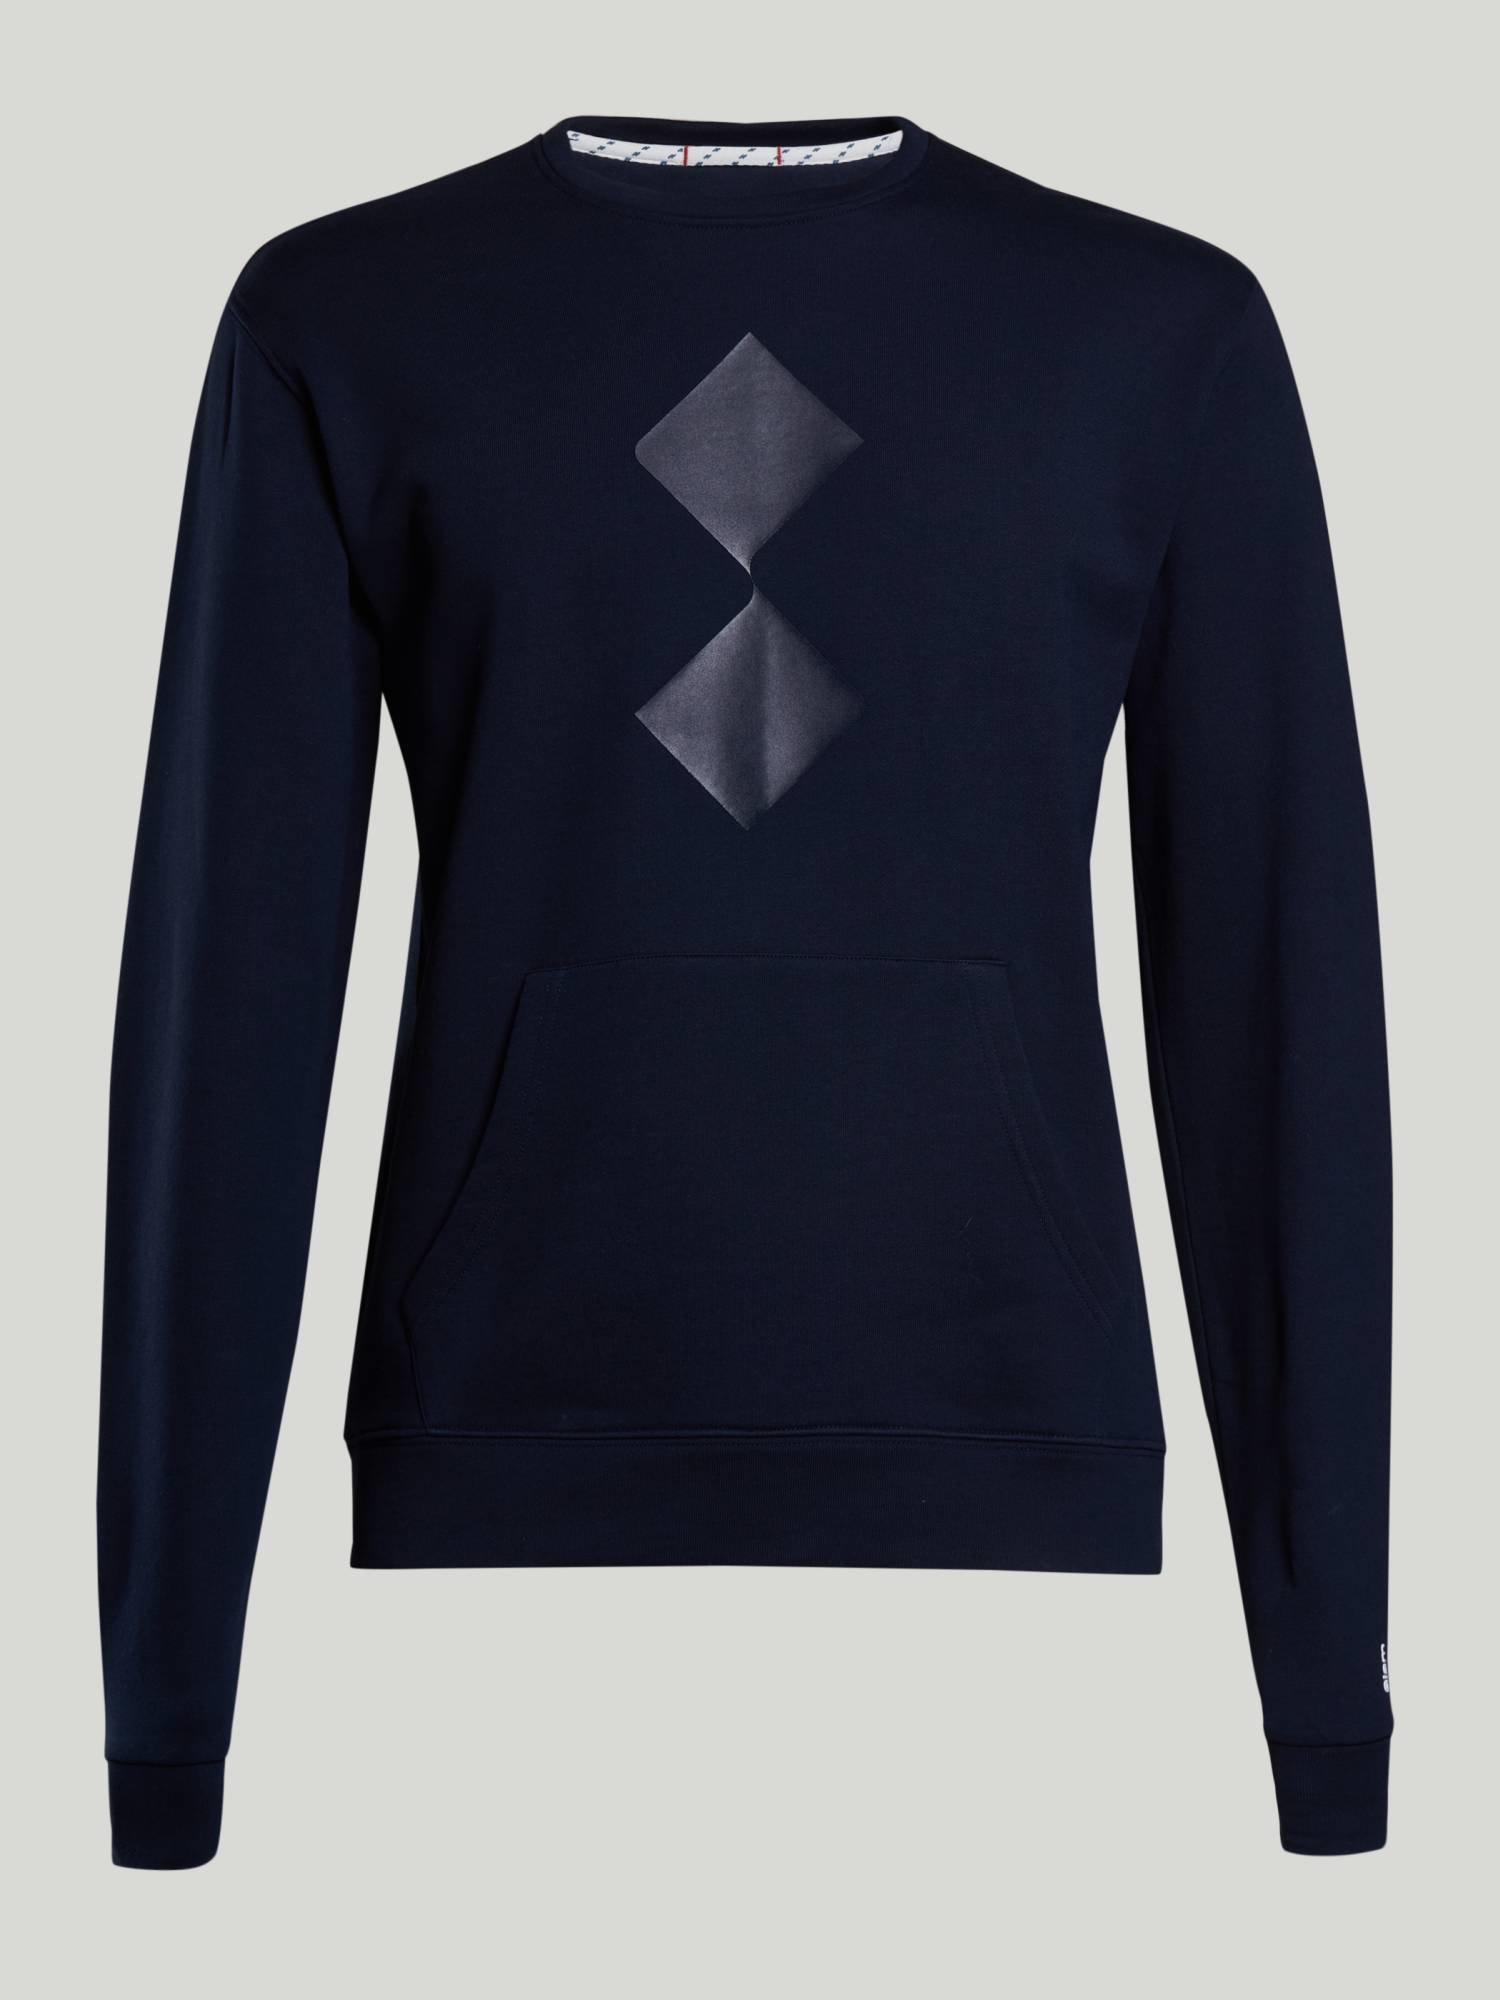 SWEATSHIRT CLIPPER - Azul Marino